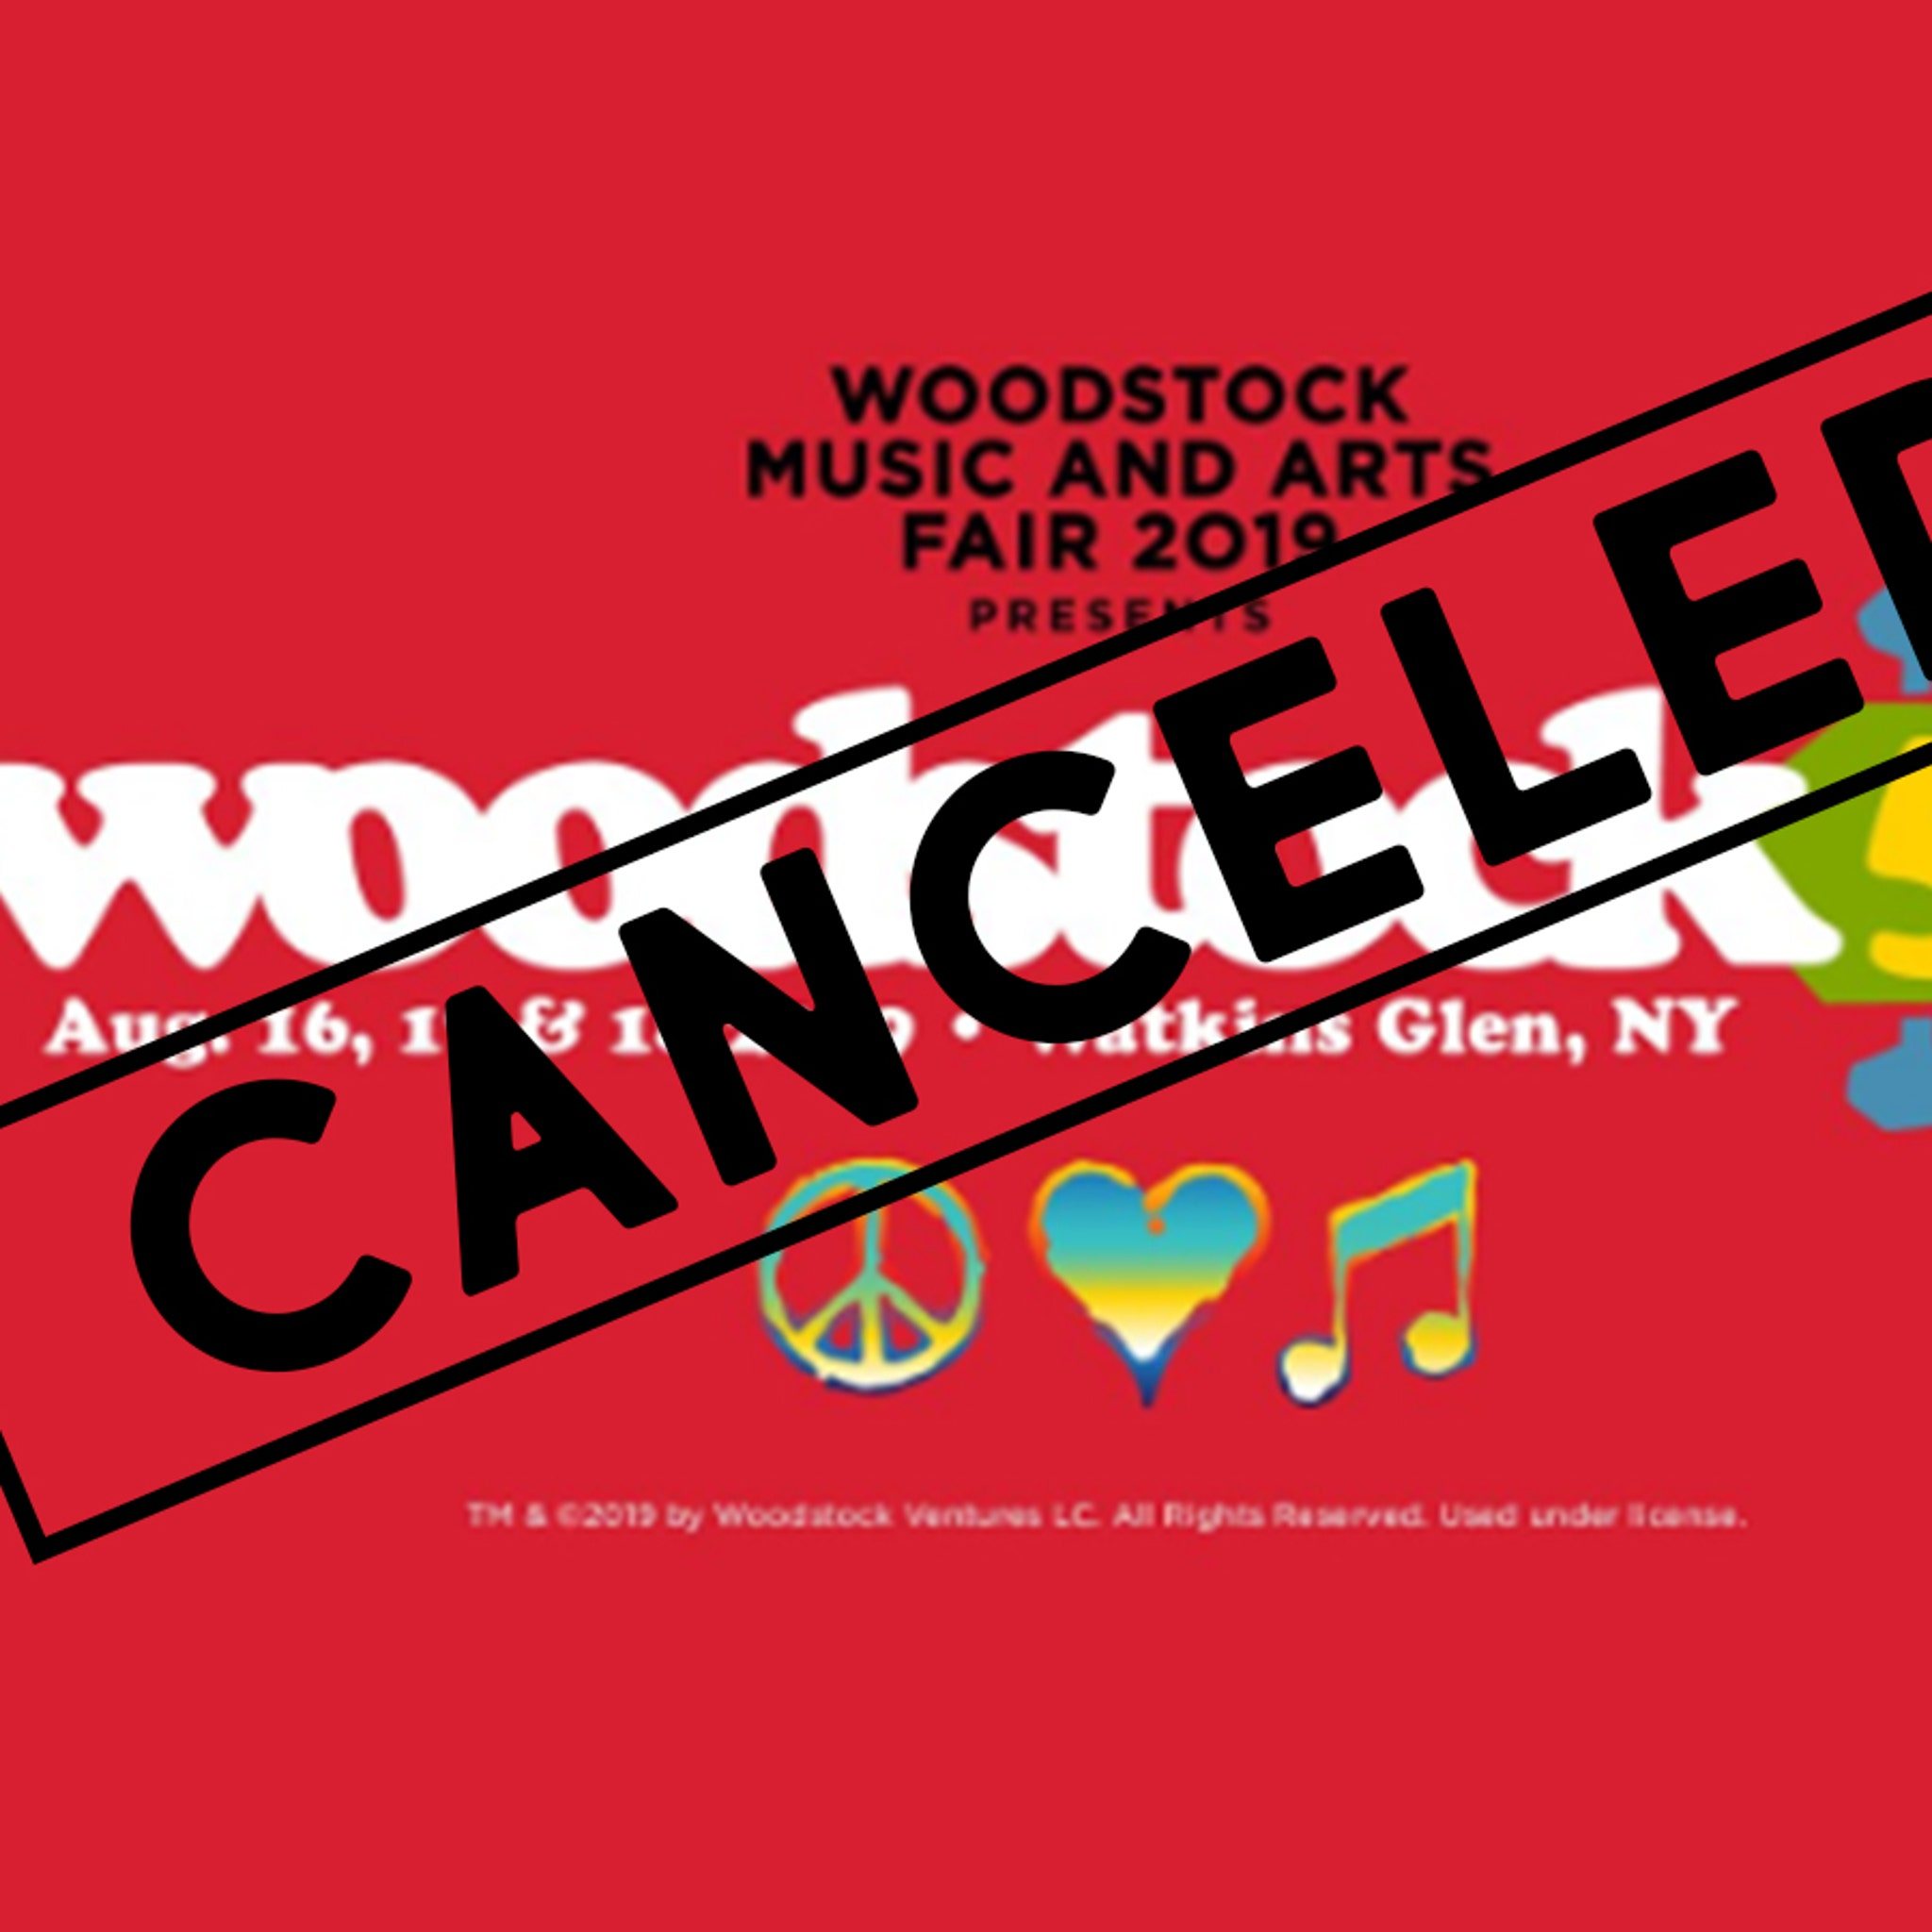 Woodstock 50 Investors Pull Funding, Promoter Looking For New Partners